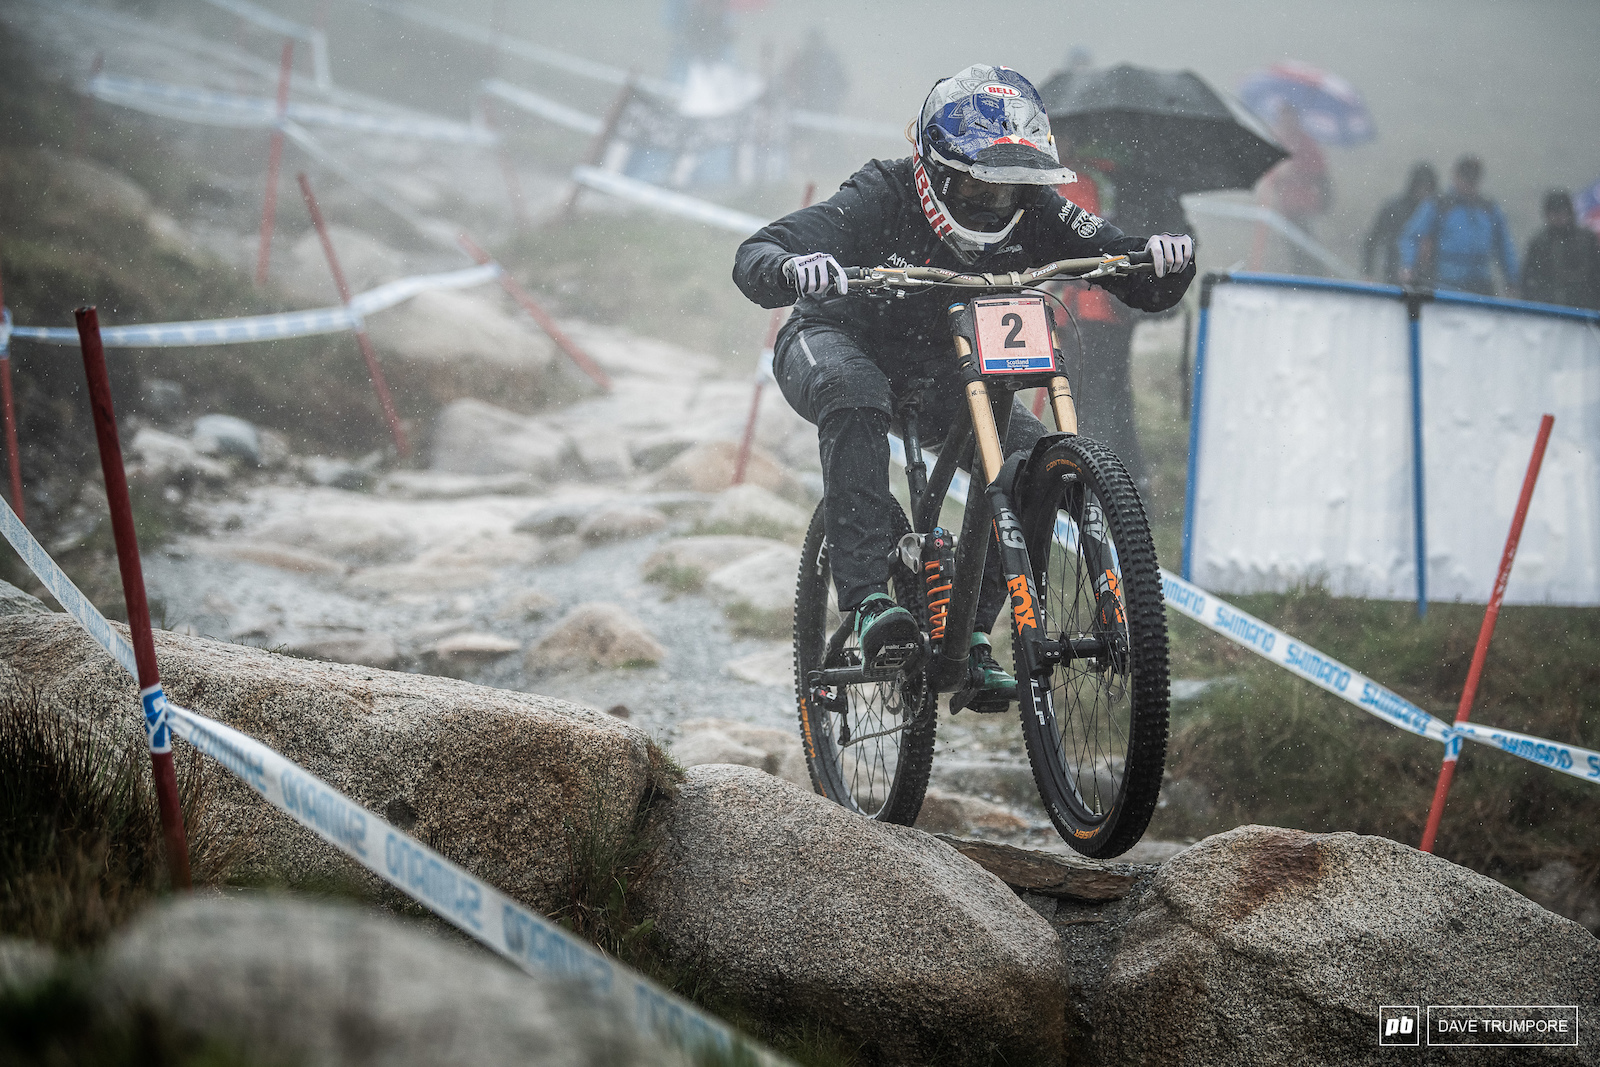 Rachel Atherton smashing rocks and raindrops in Fort William.